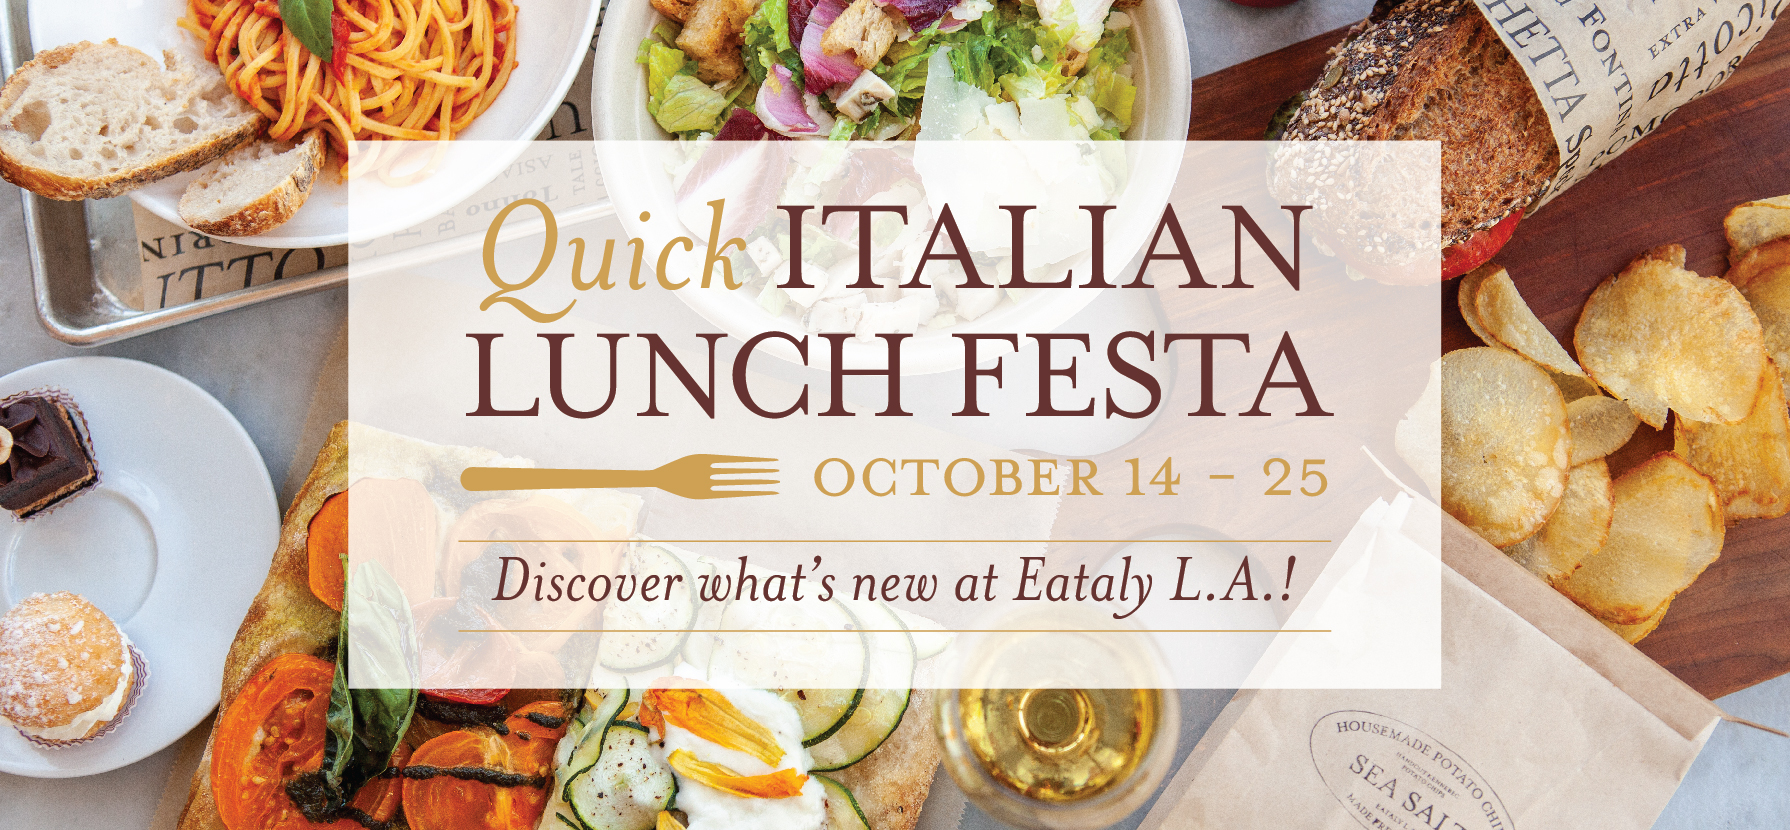 Quick Italian Lunch Festa at Eataly L.A.